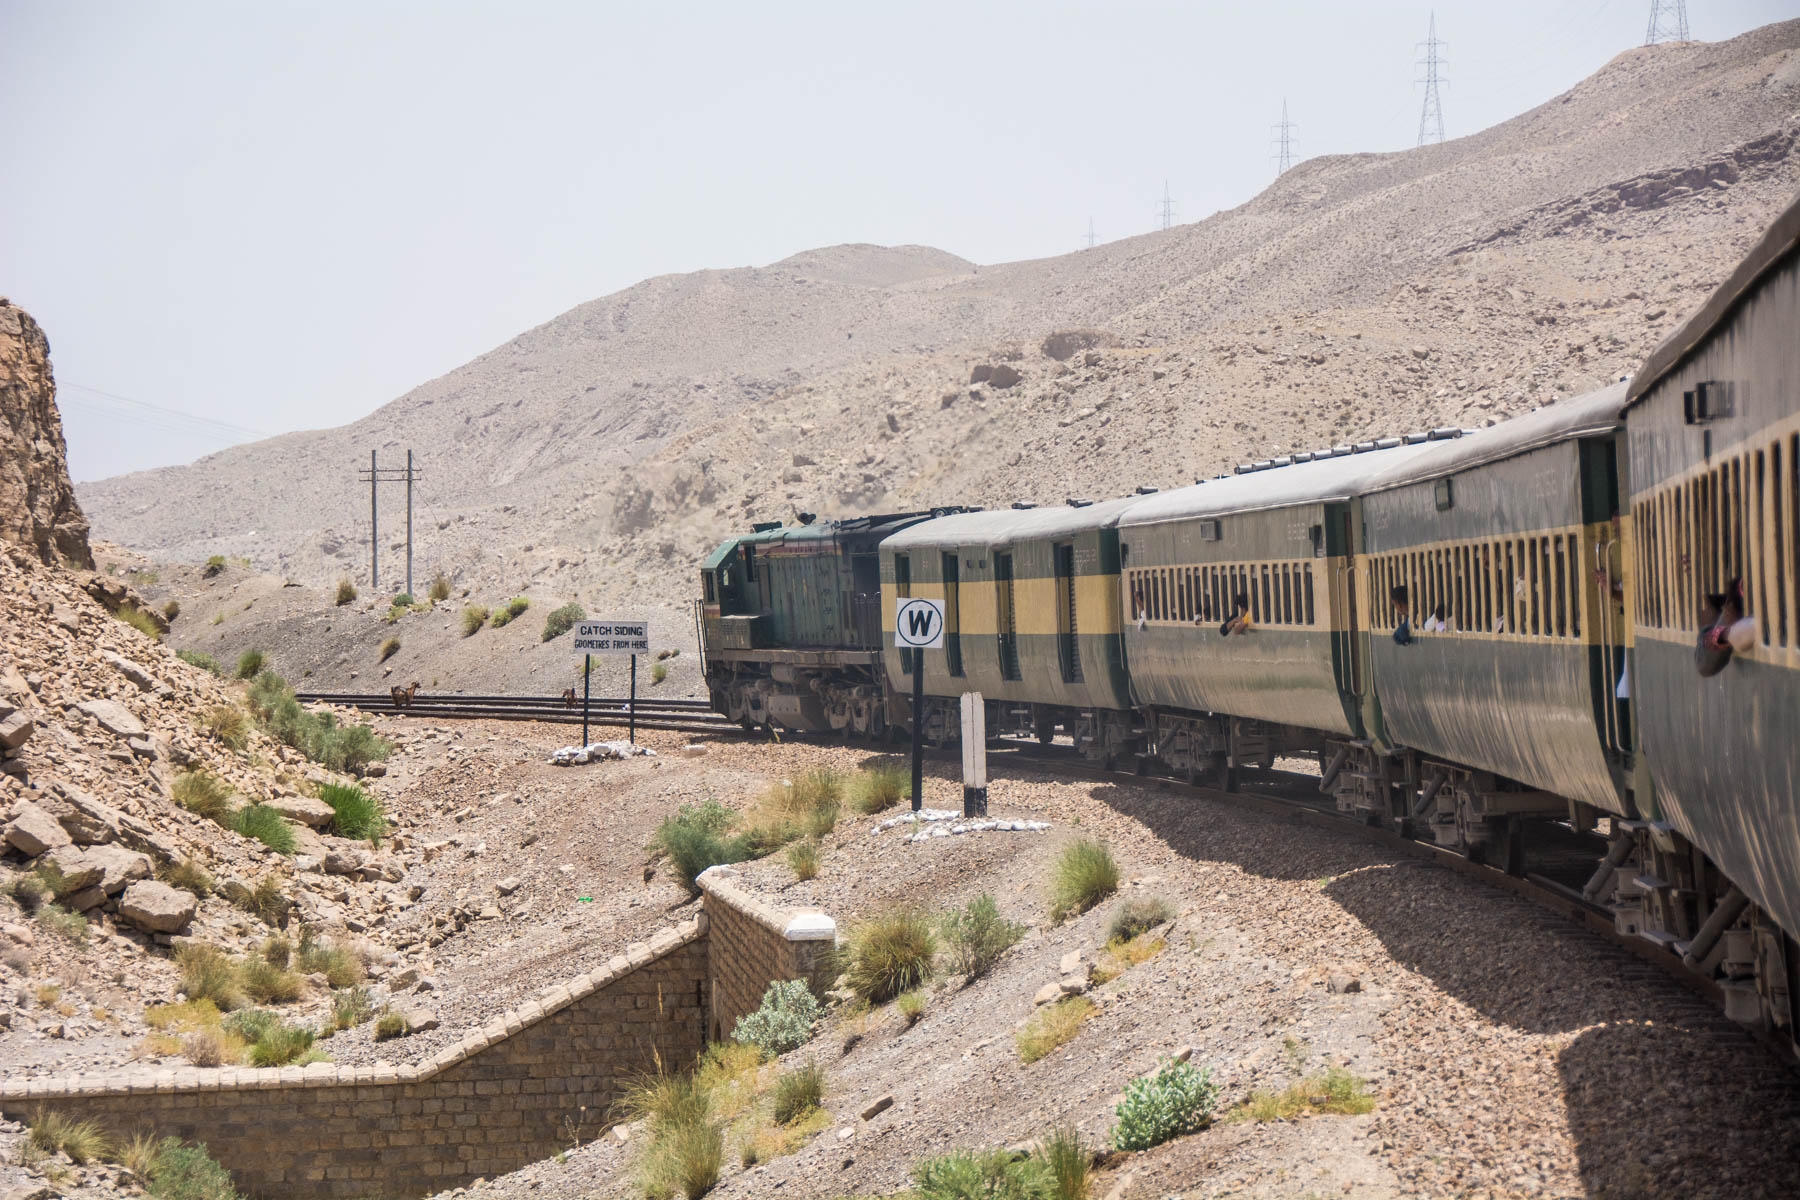 Guide to train travel in Pakistan - Bolan Mail train to Karachi - Lost With Purpose travel blog